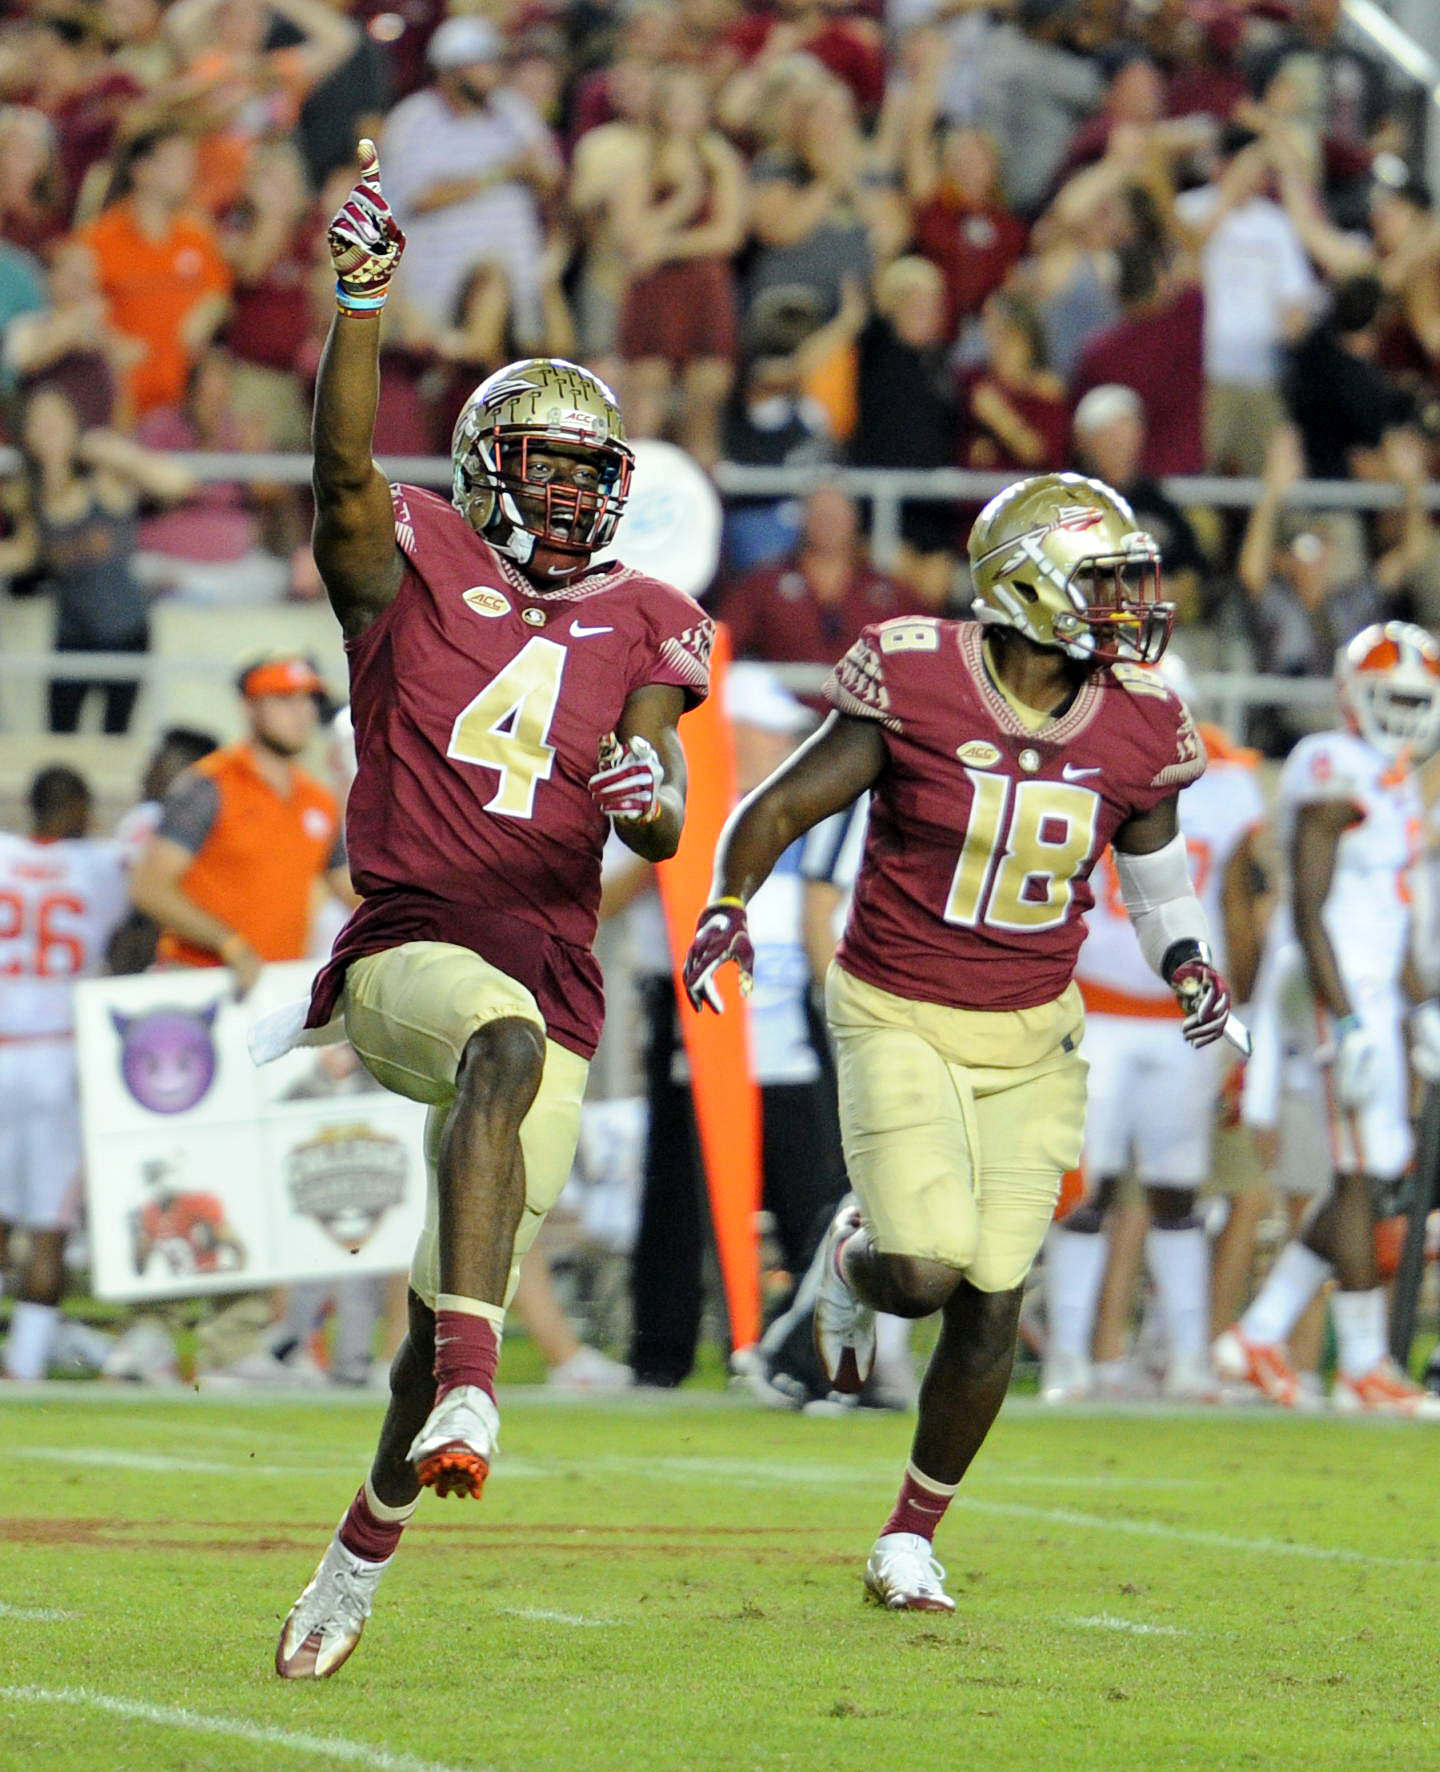 Oct 29, 2016; Tallahassee, FL, USA; Florida State Seminoles cornerback Tavarus McFadden (4) celebrates an interception during the game against the Clemson Tigers at Doak Campbell Stadium. Mandatory Credit: Melina Vastola-USA TODAY Sports